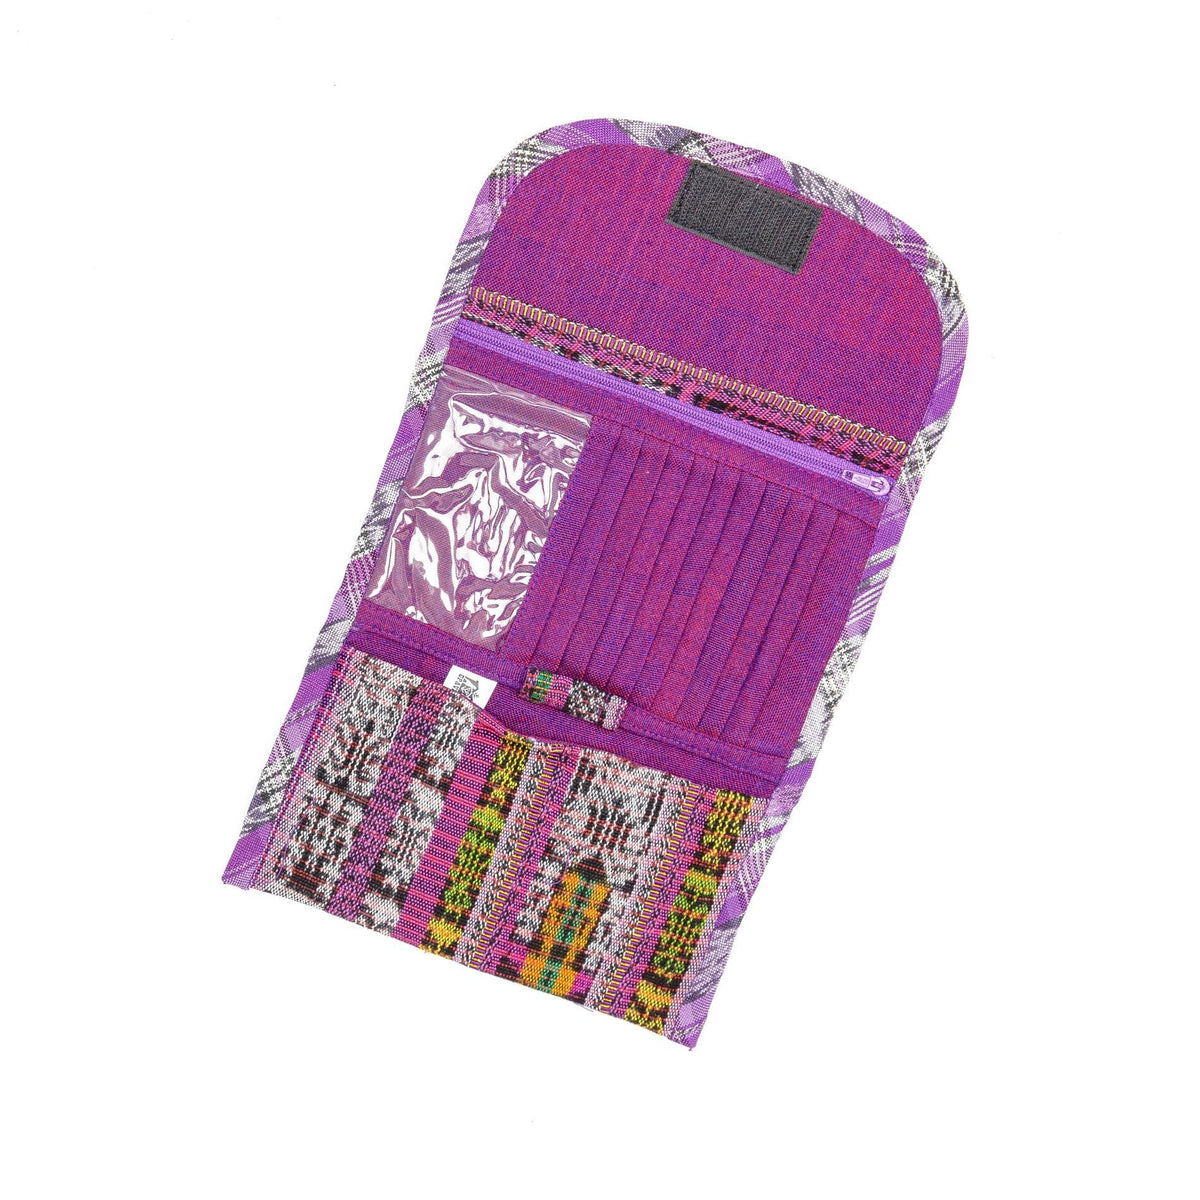 Guatemalan Fair Trade Recycled Corte Wallet Interior